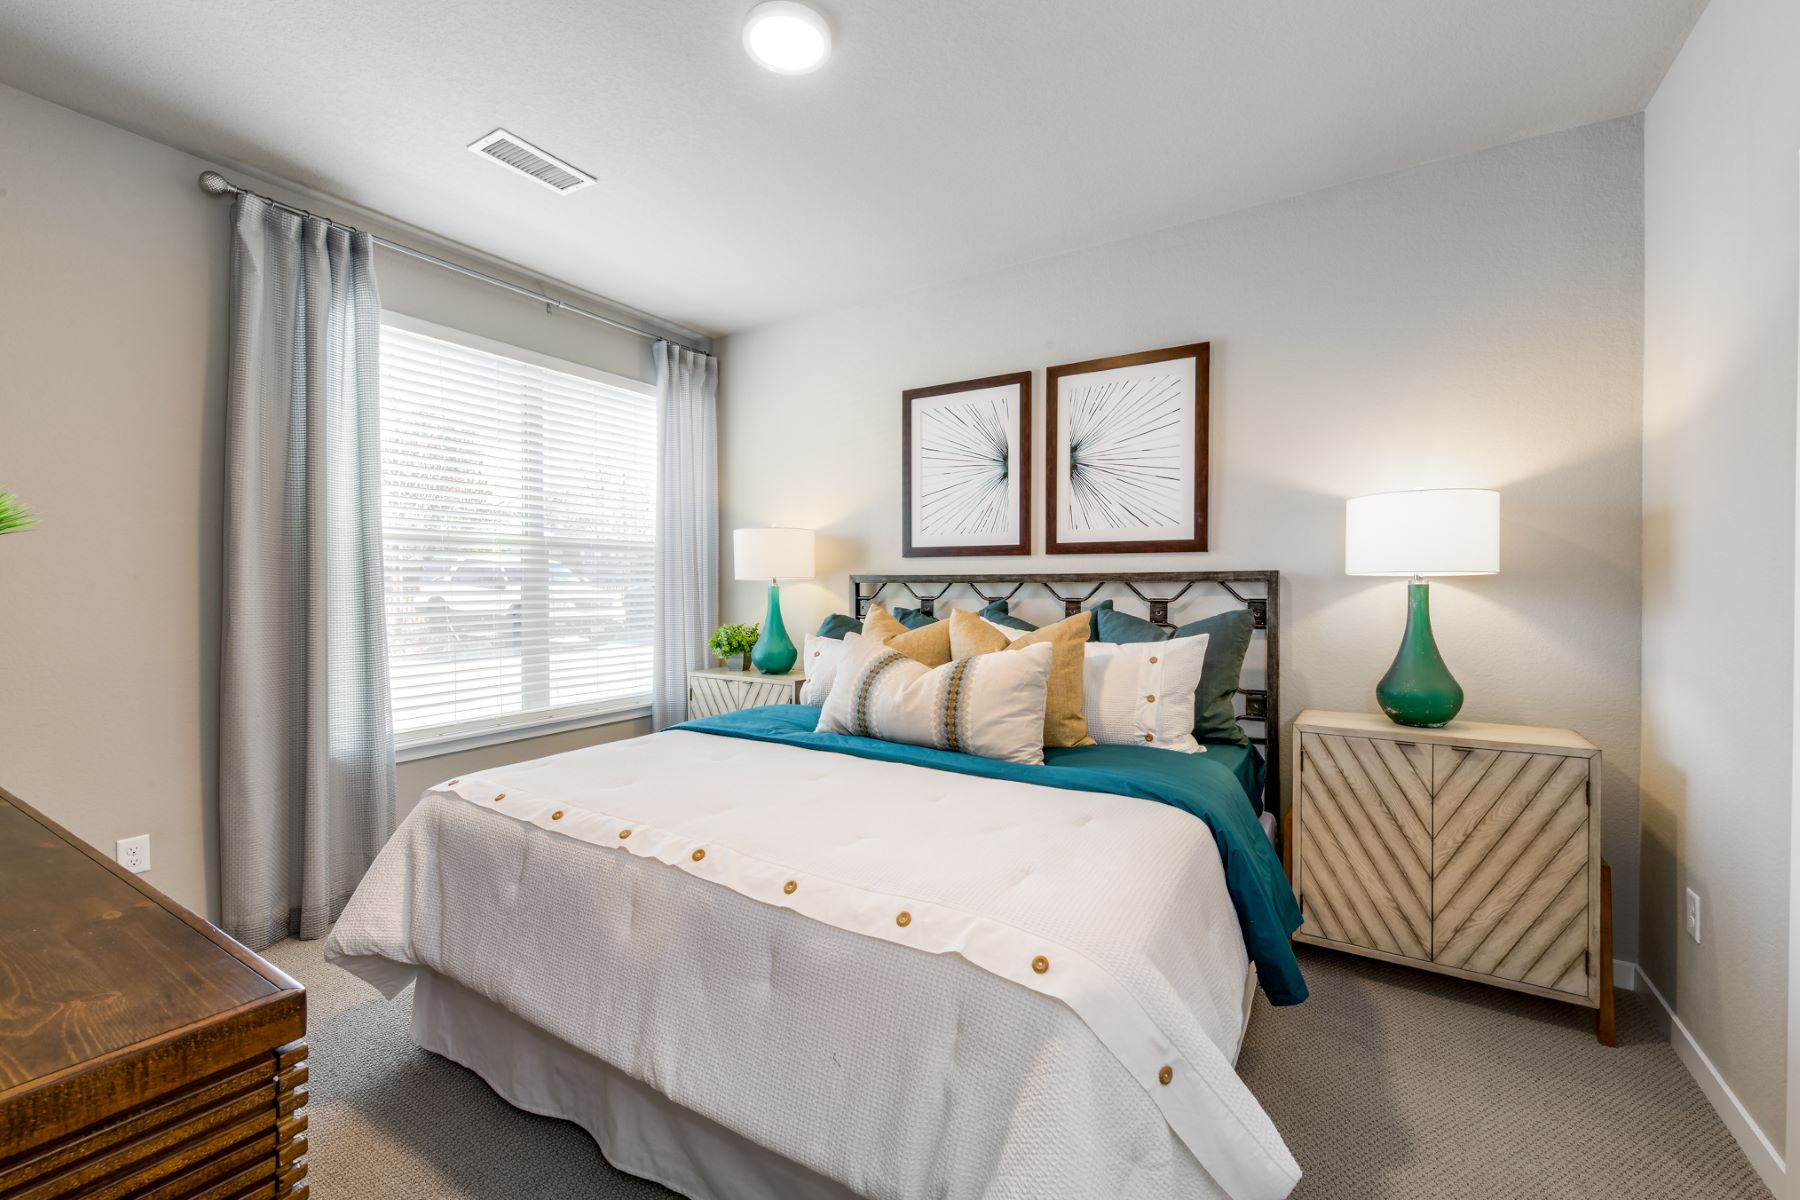 Additional photo for property listing at 155 South Monaco Parkway #101 155 S Monaco Pkwy #101 Denver, Colorado 80224 United States